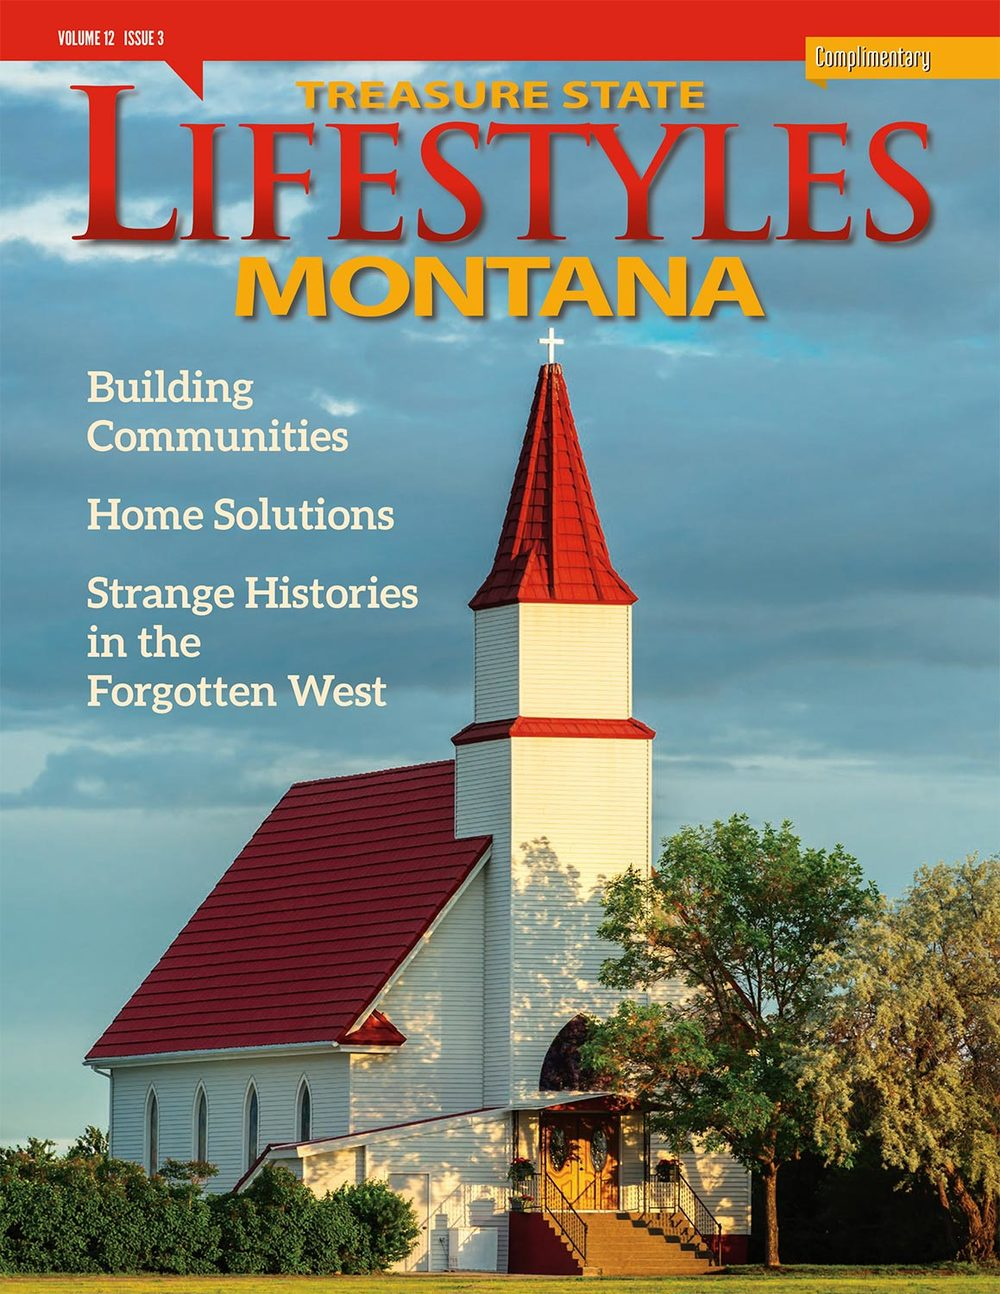 Montana blaine county hogeland - Montana Lifestyles Cover Photo